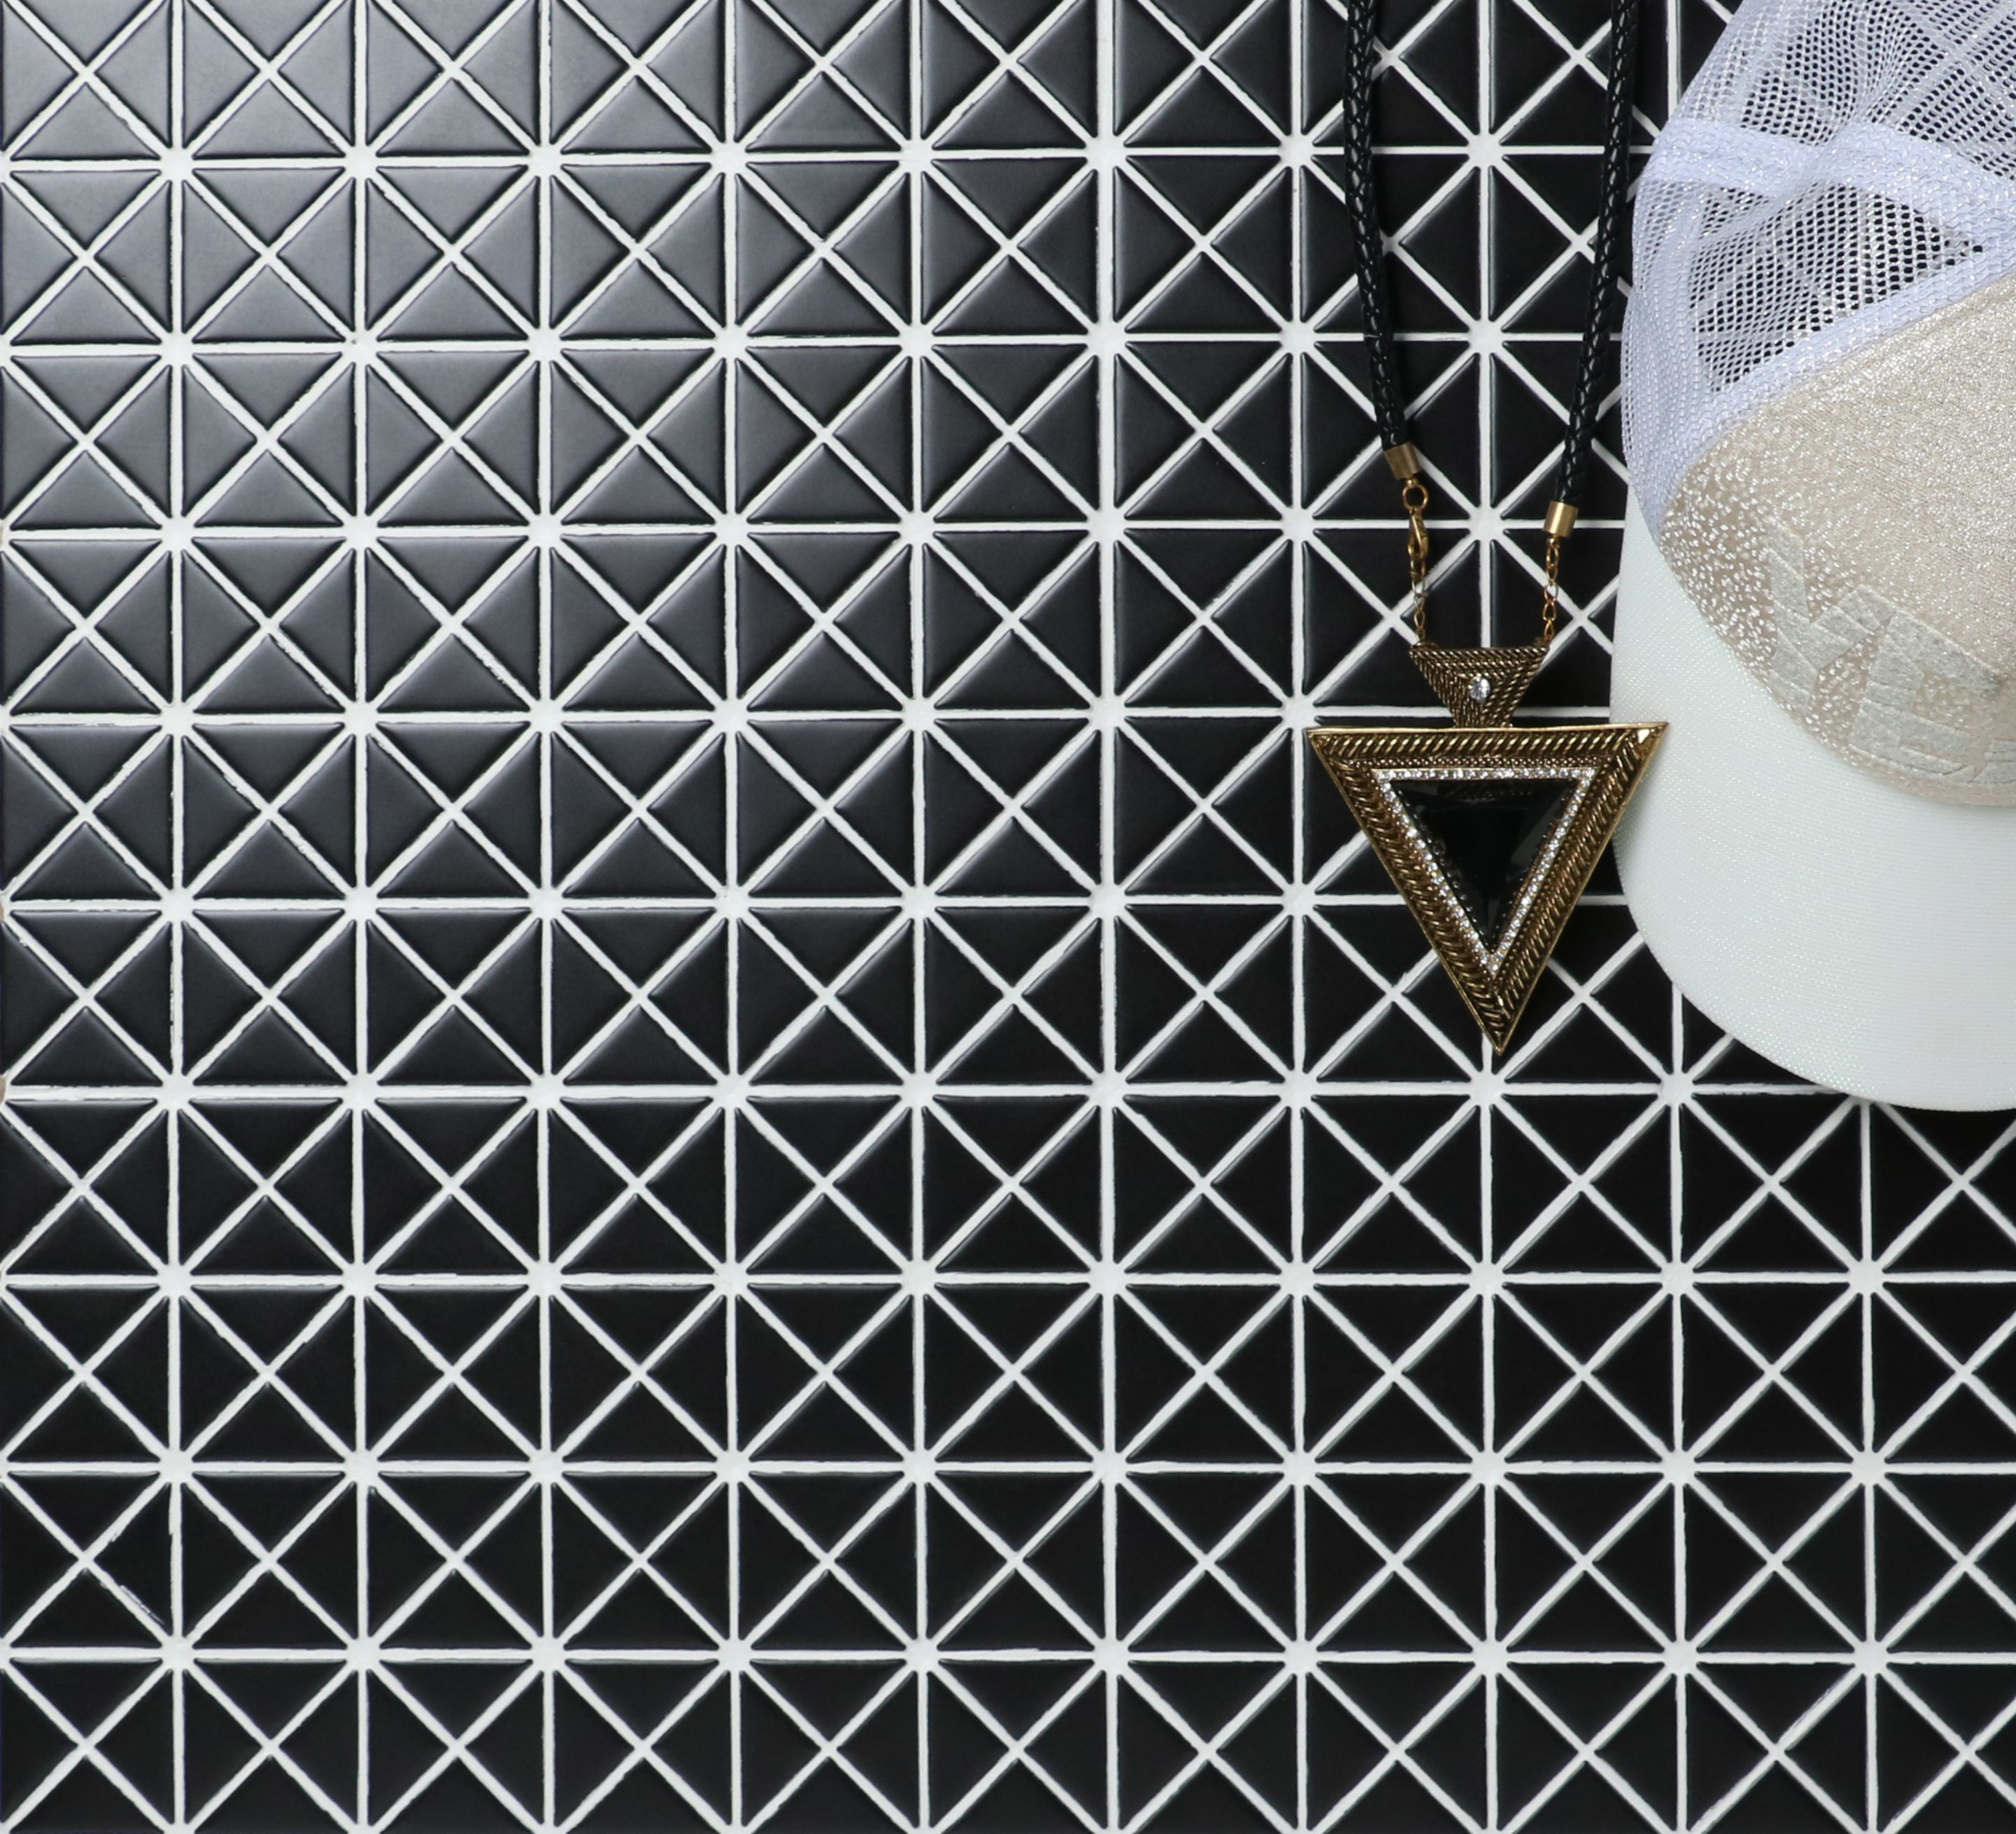 1 Inch Matte Finish Triangle Mosaic Tiles Excellent For Design Interior Unique Home Style Porcelain Mosaic Tile Porcelain Mosaic Mosaic Tiles